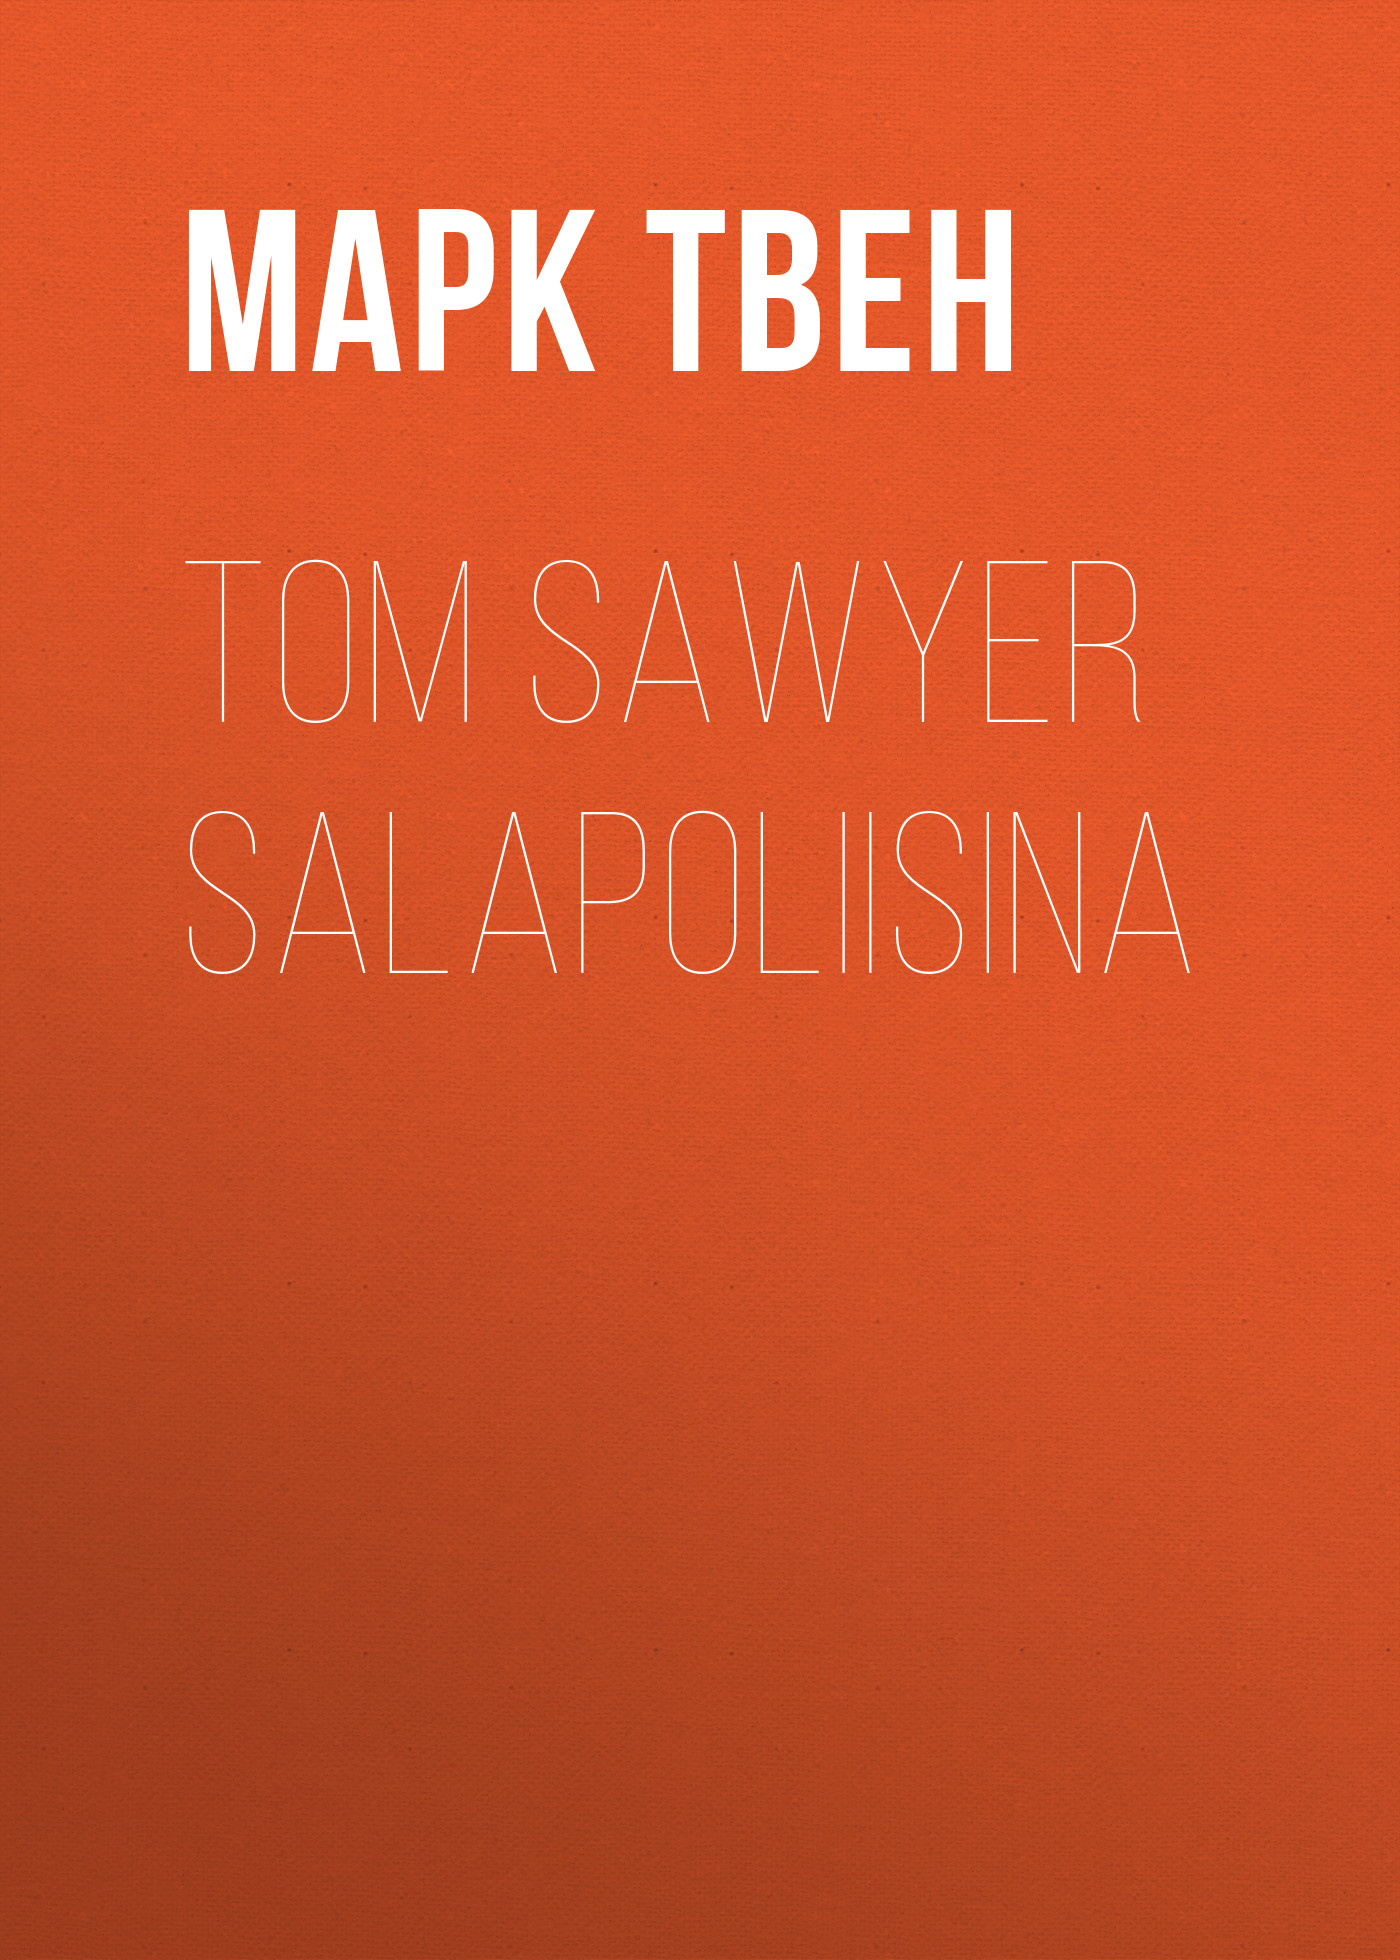 Tom Sawyer salapoliisina